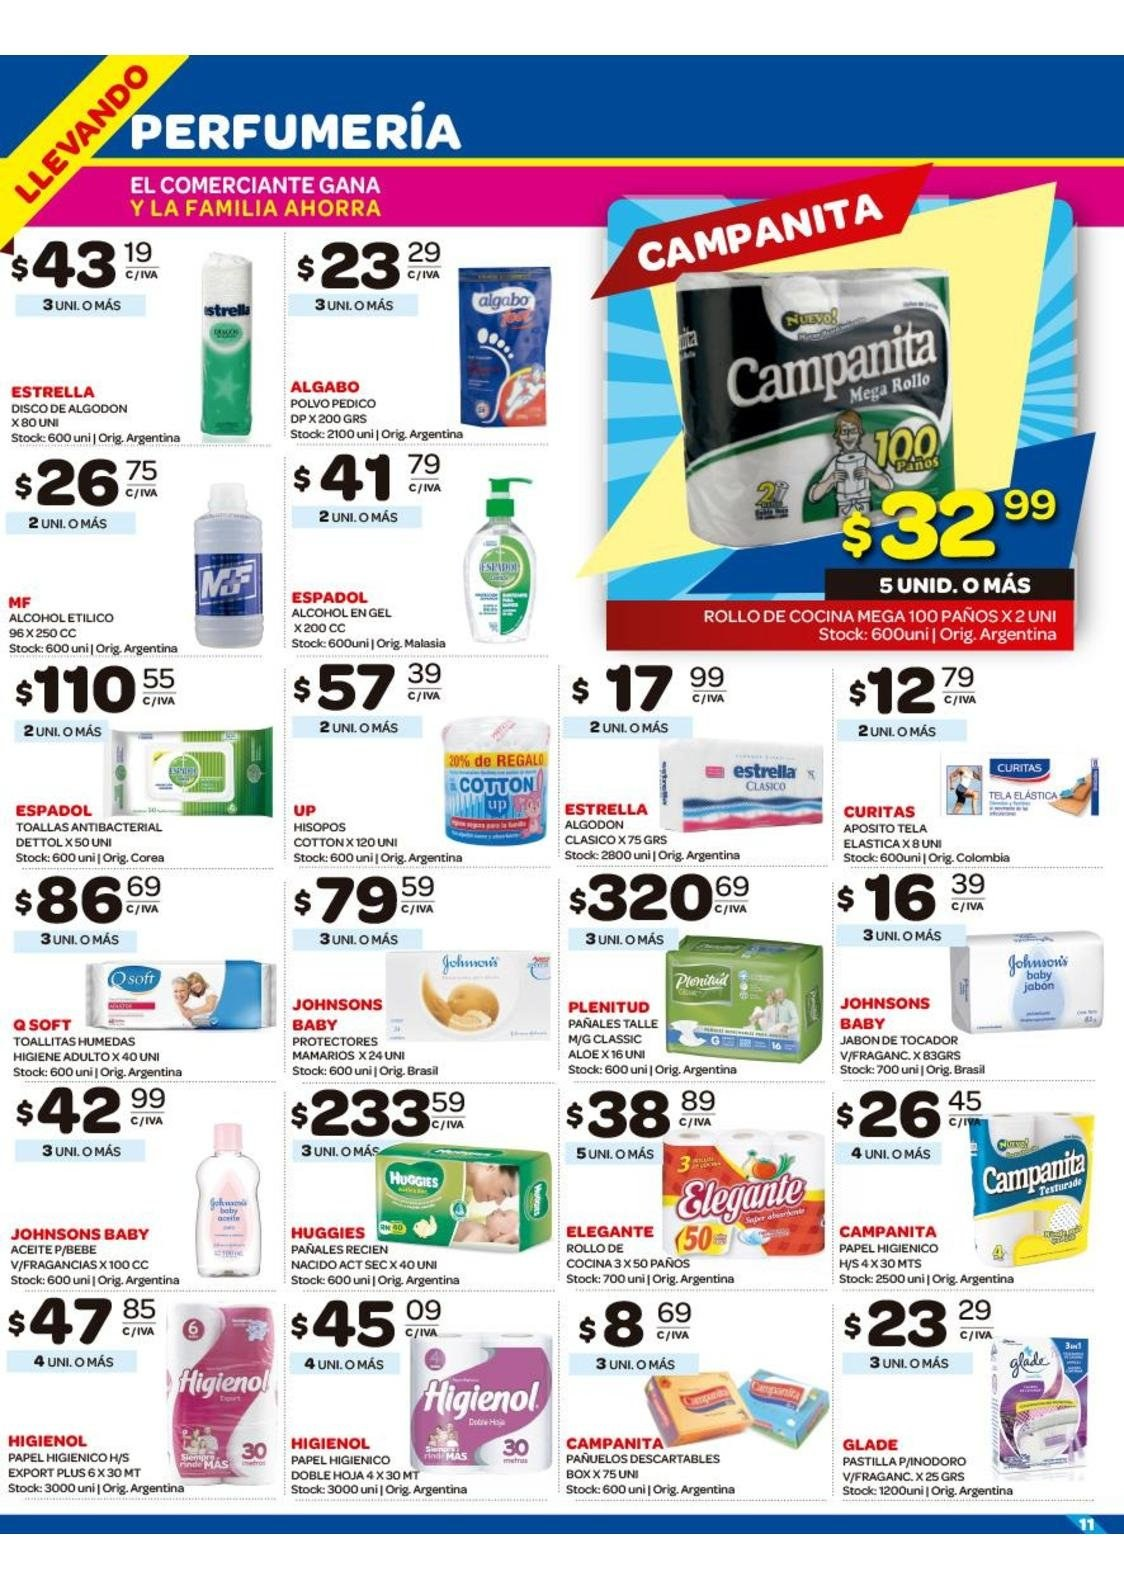 Folleto actual Carrefour - 7.1.2019 - 13.1.2019 - Ventas - aceite de9ca29a2b13